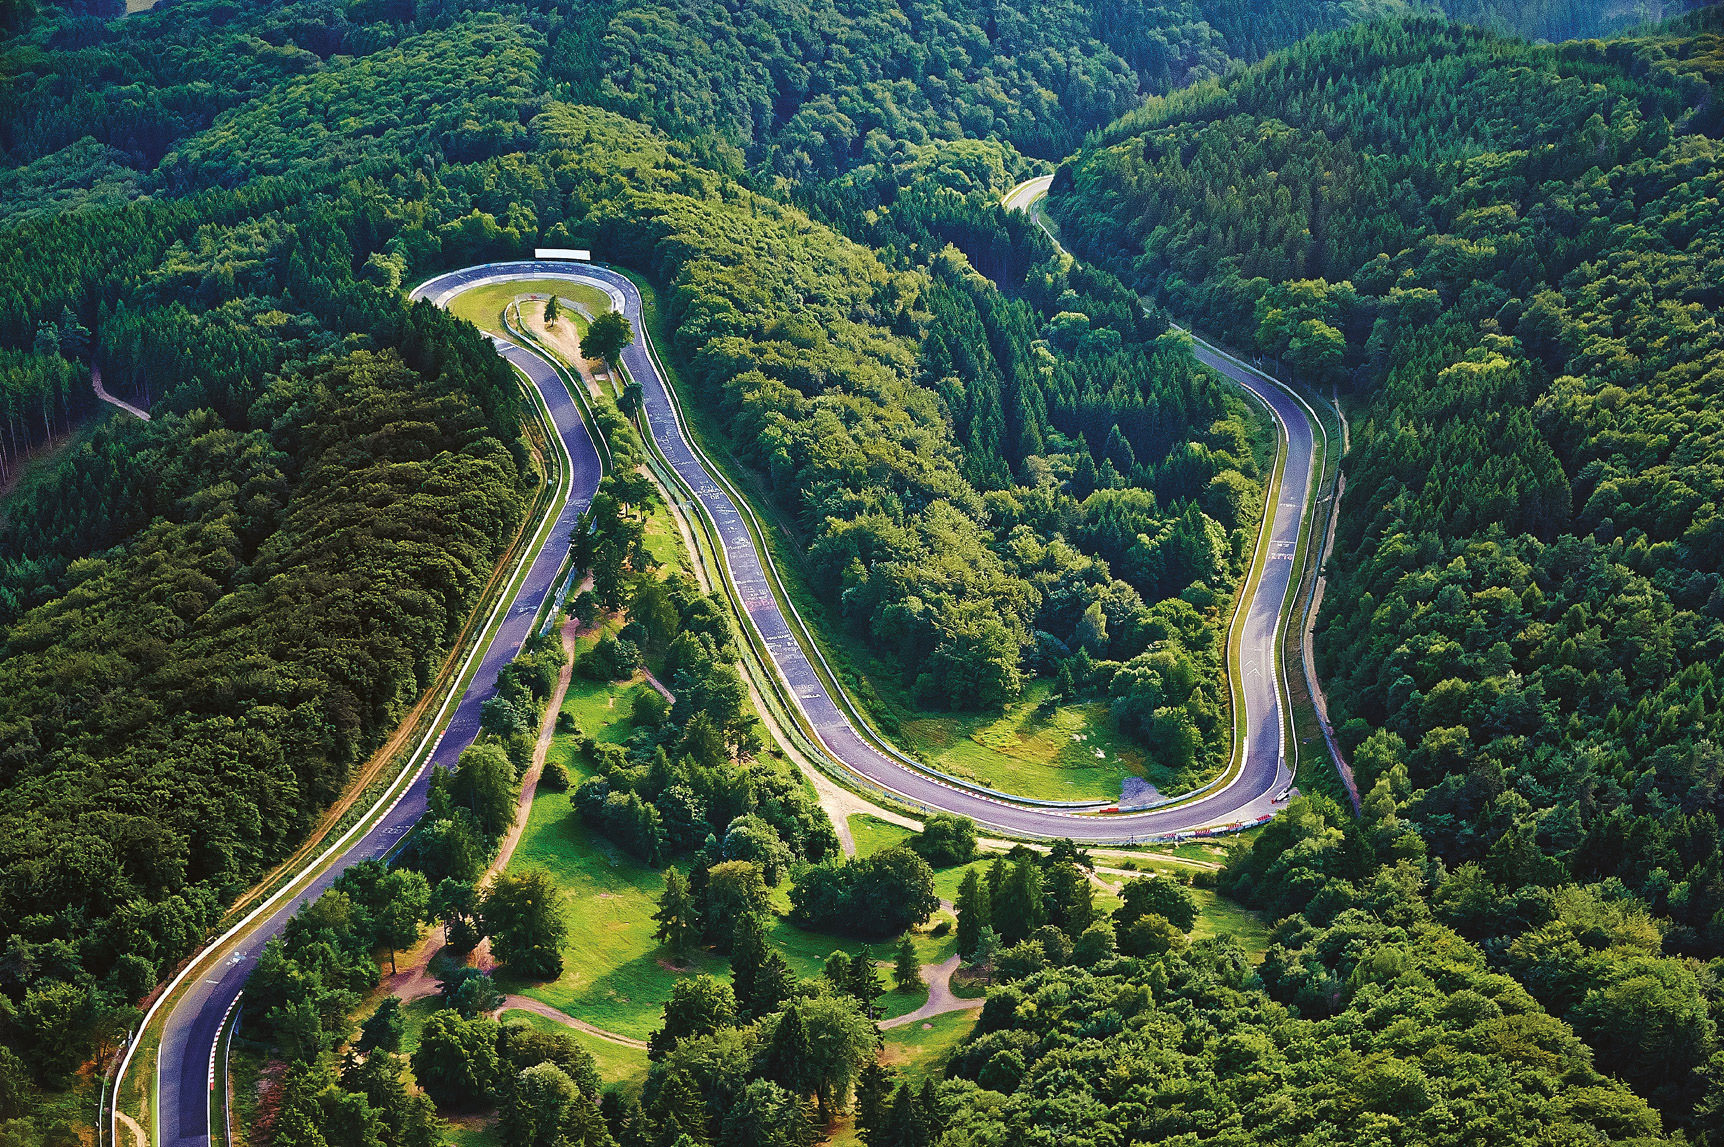 The public can book single laps of the Nordschleife for as little as €25 each. Just don't crash, as there's a €600 recovery charge!